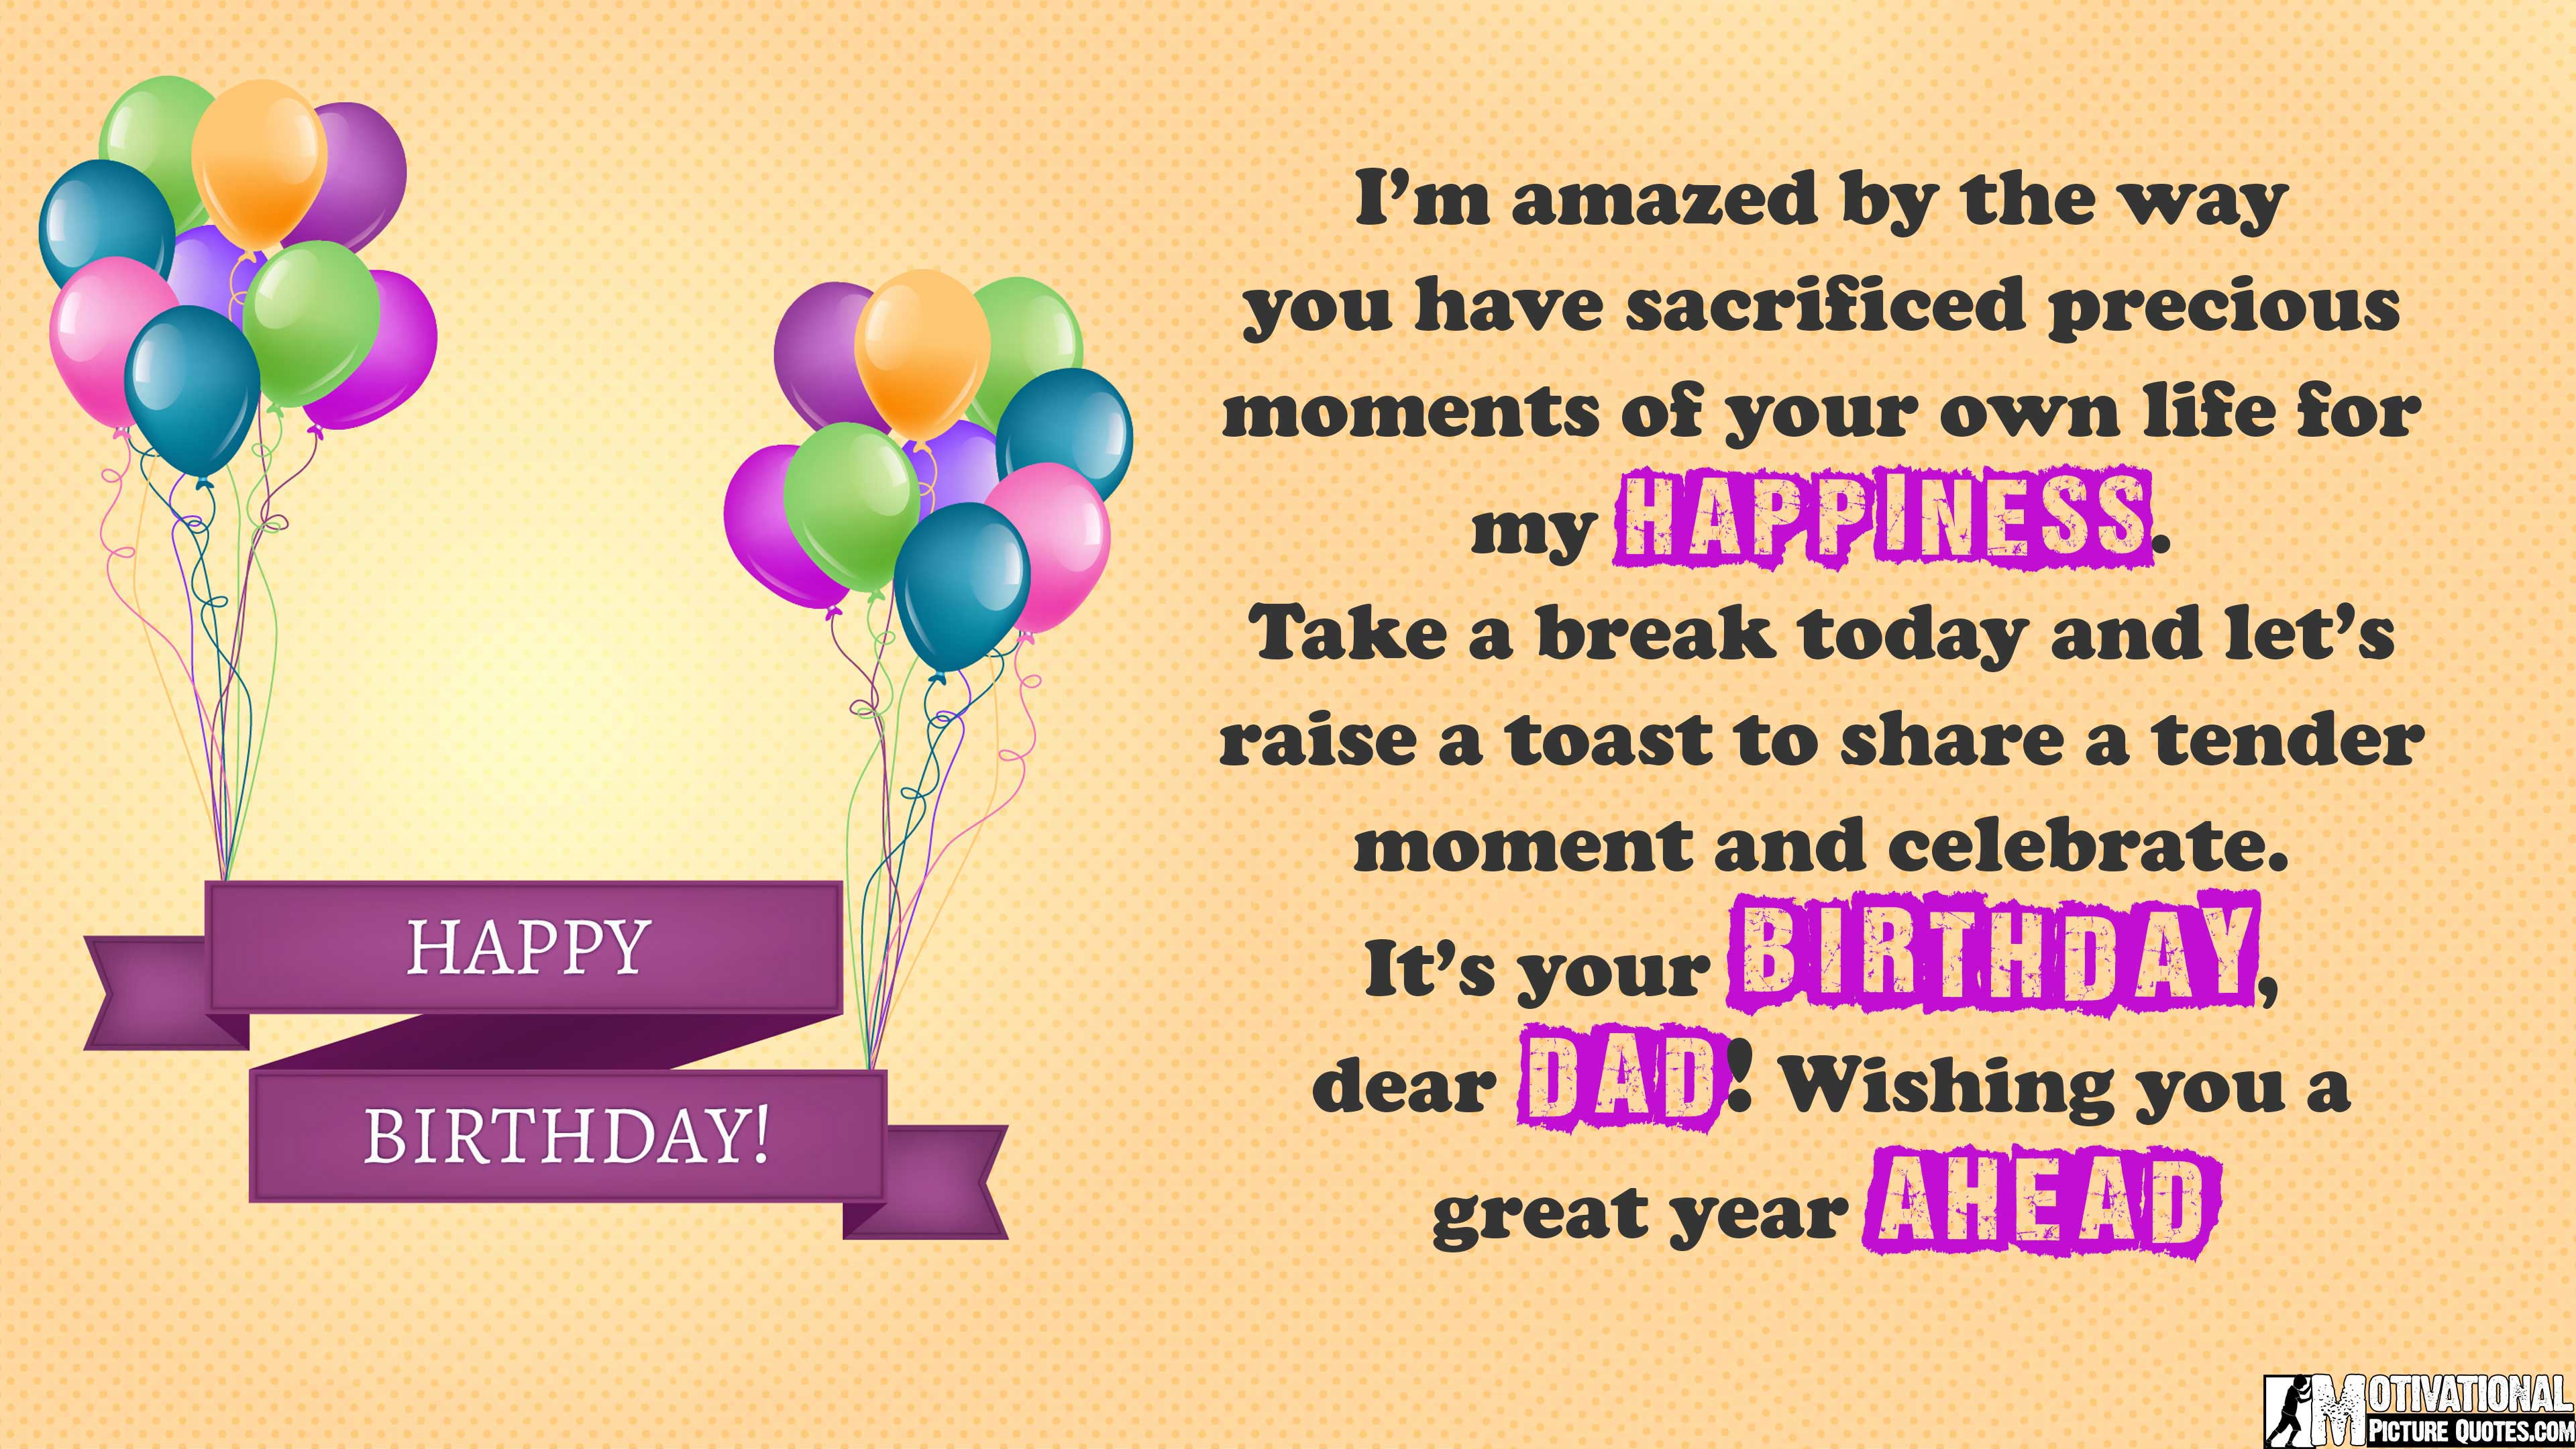 Birthday Celebration Quotes 35 Inspirational Birthday Quotes Images  Insbright